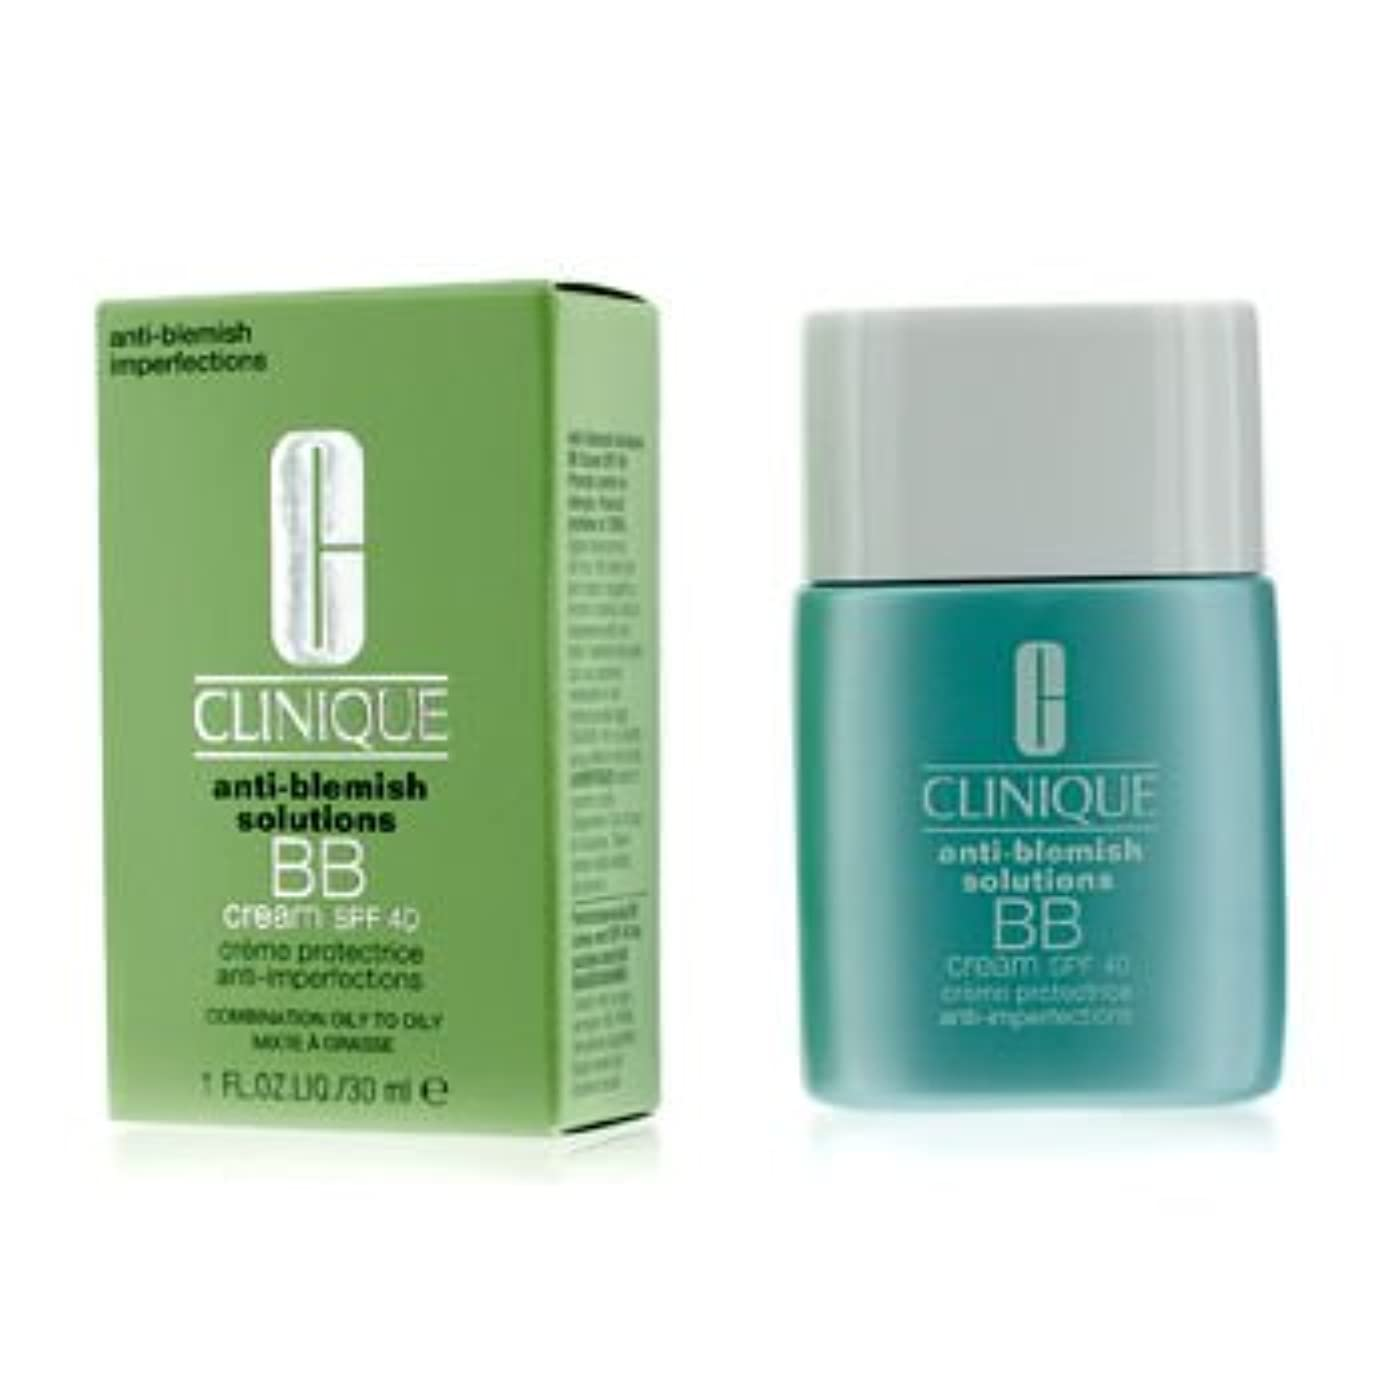 アッティカス細菌矢[Clinique] Anti-Blemish Solutions BB Cream SPF 40 - Light Medium (Combination Oily to Oily) 30ml/1oz